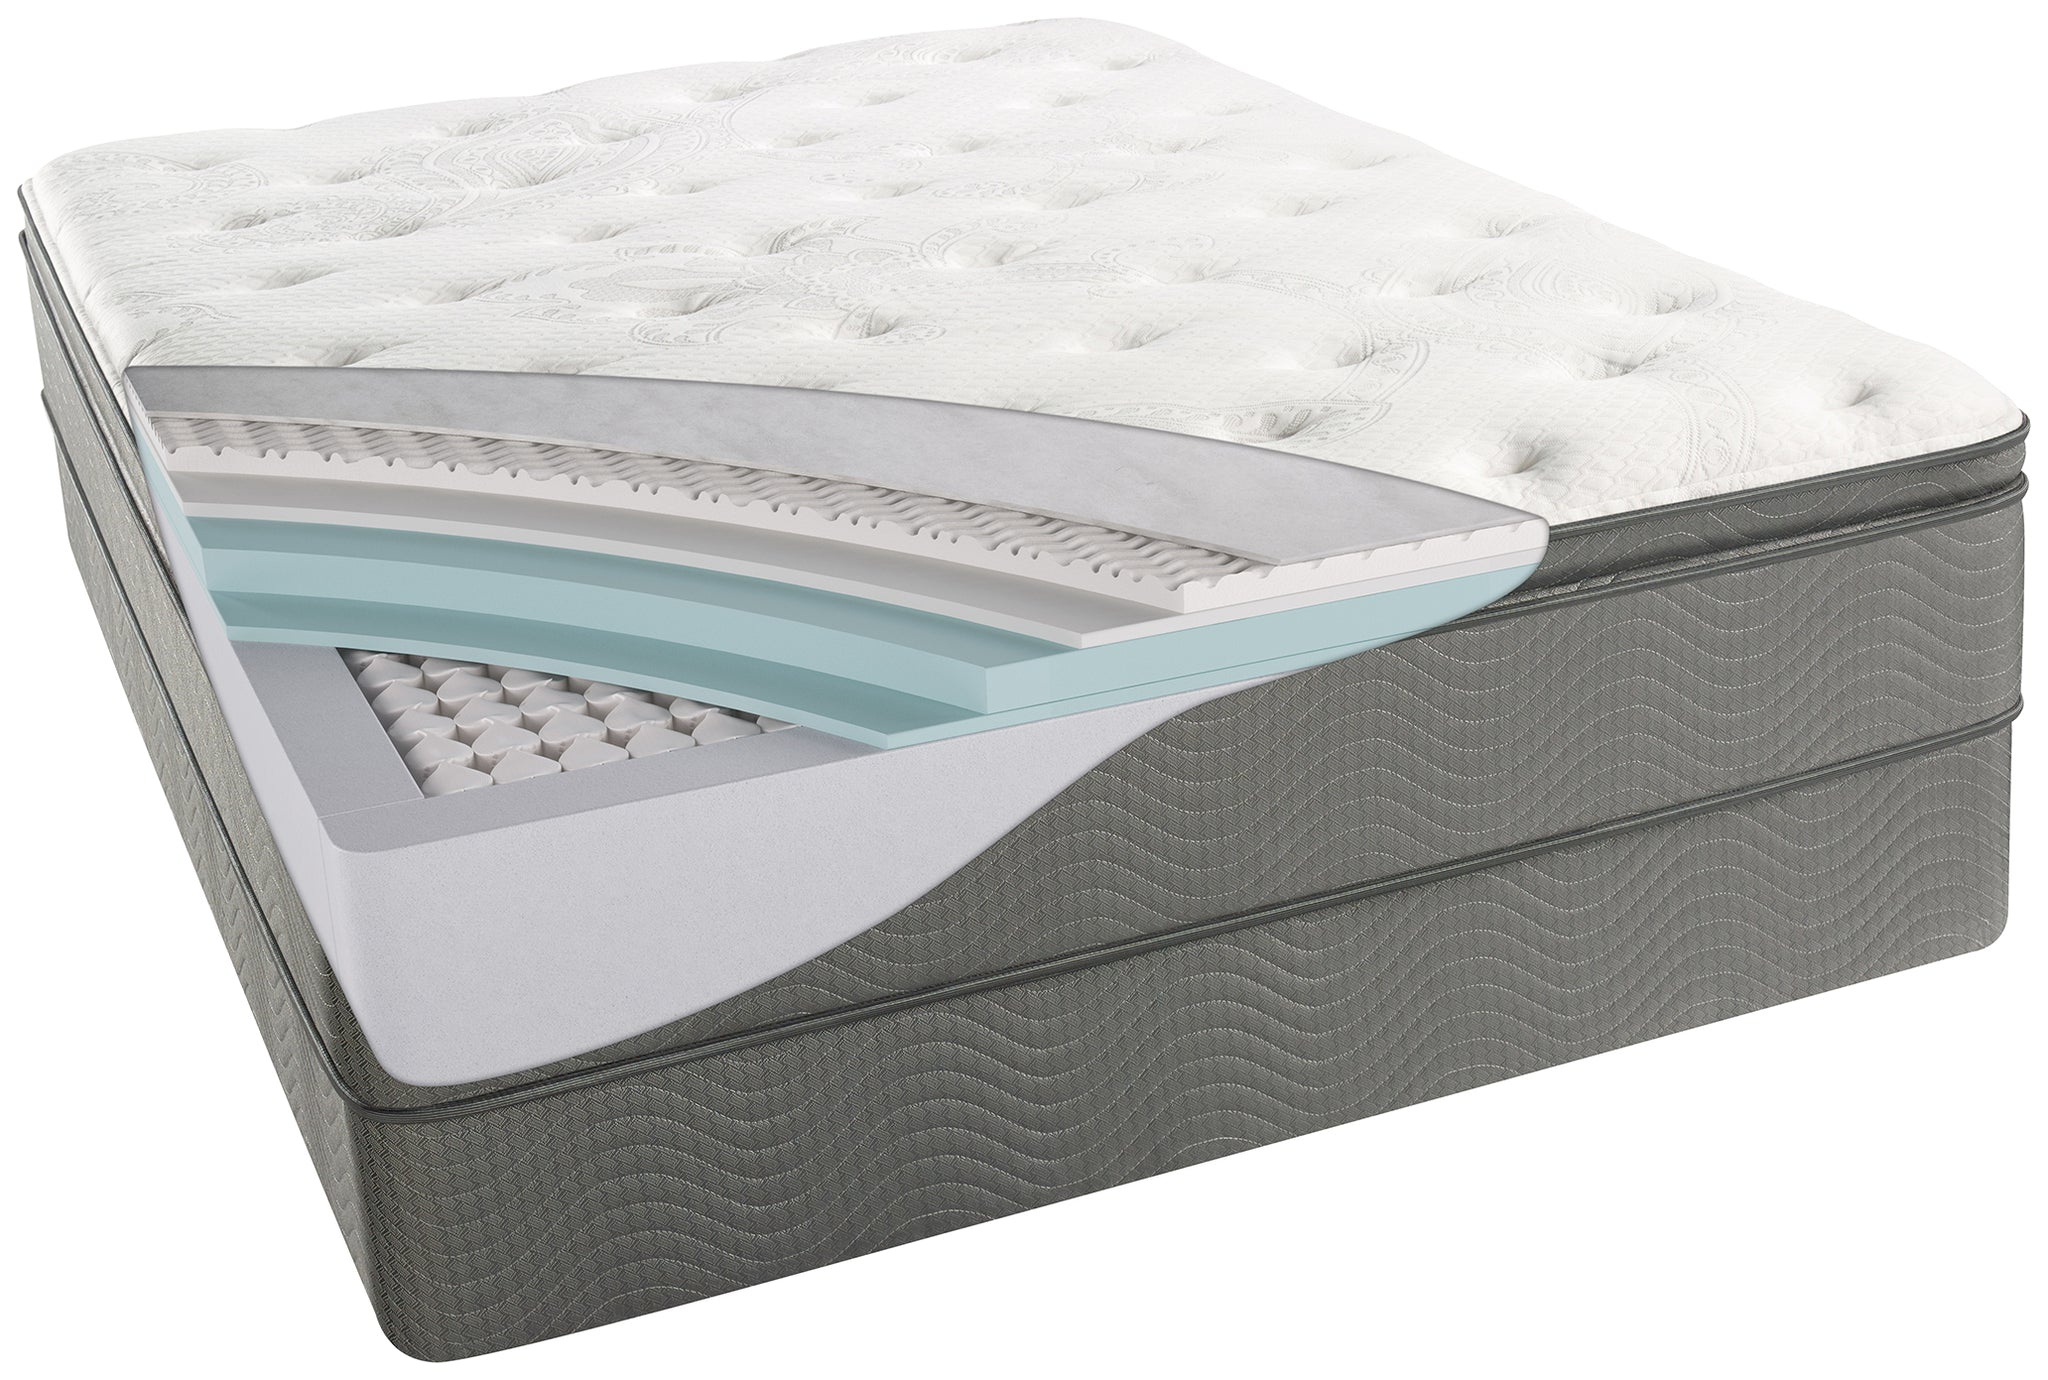 day relyon next mattresses from mattress the for top img worldstores pillow home everything delivery c topper htm ruby